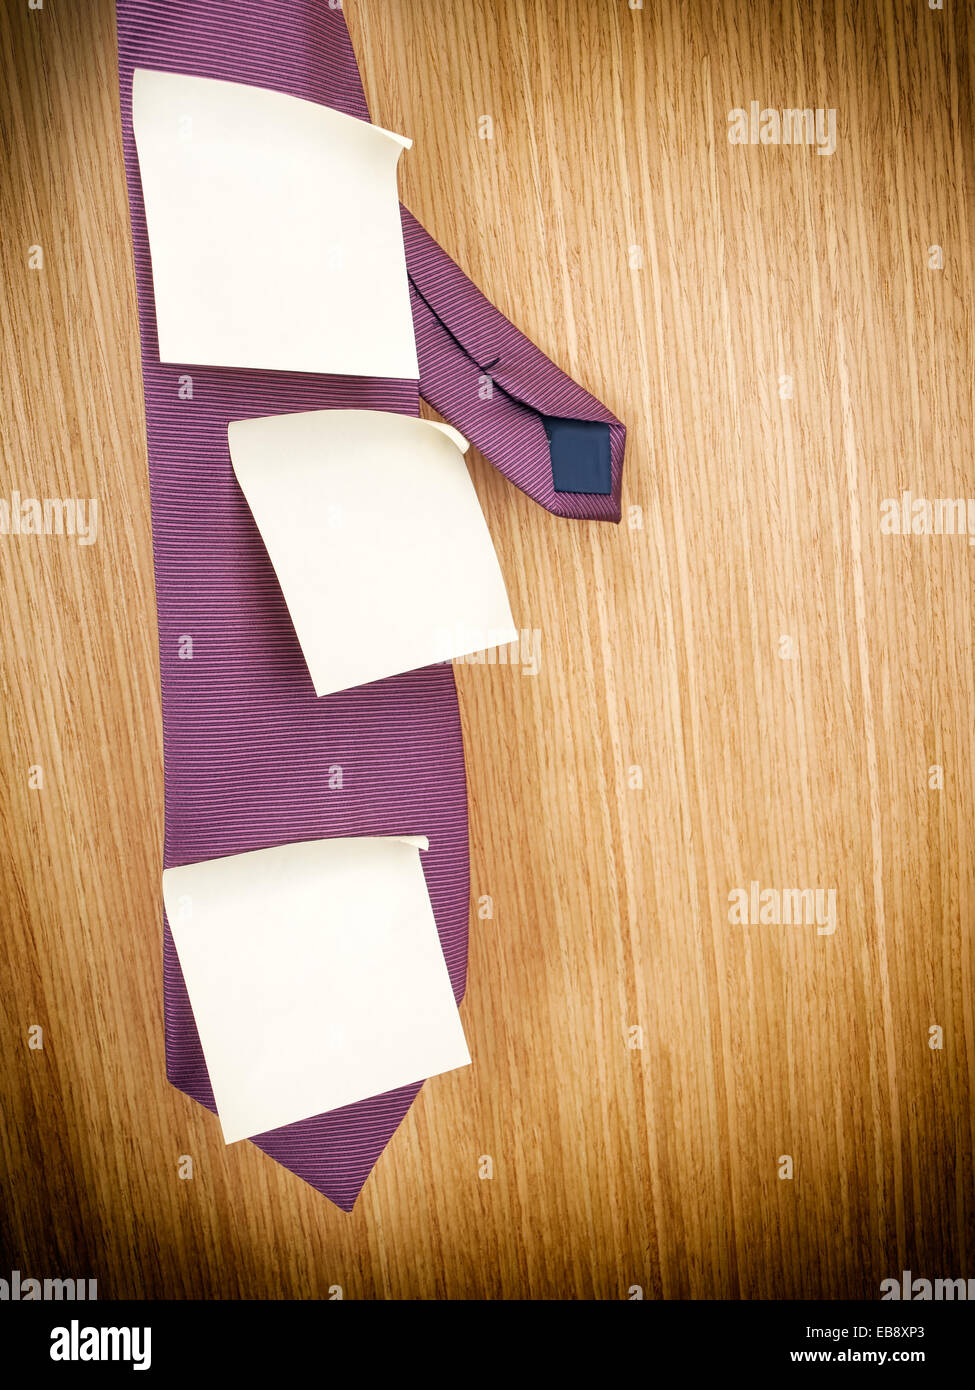 Conceptual image about planning in business world presented with a tie and few sticky notes. - Stock Image